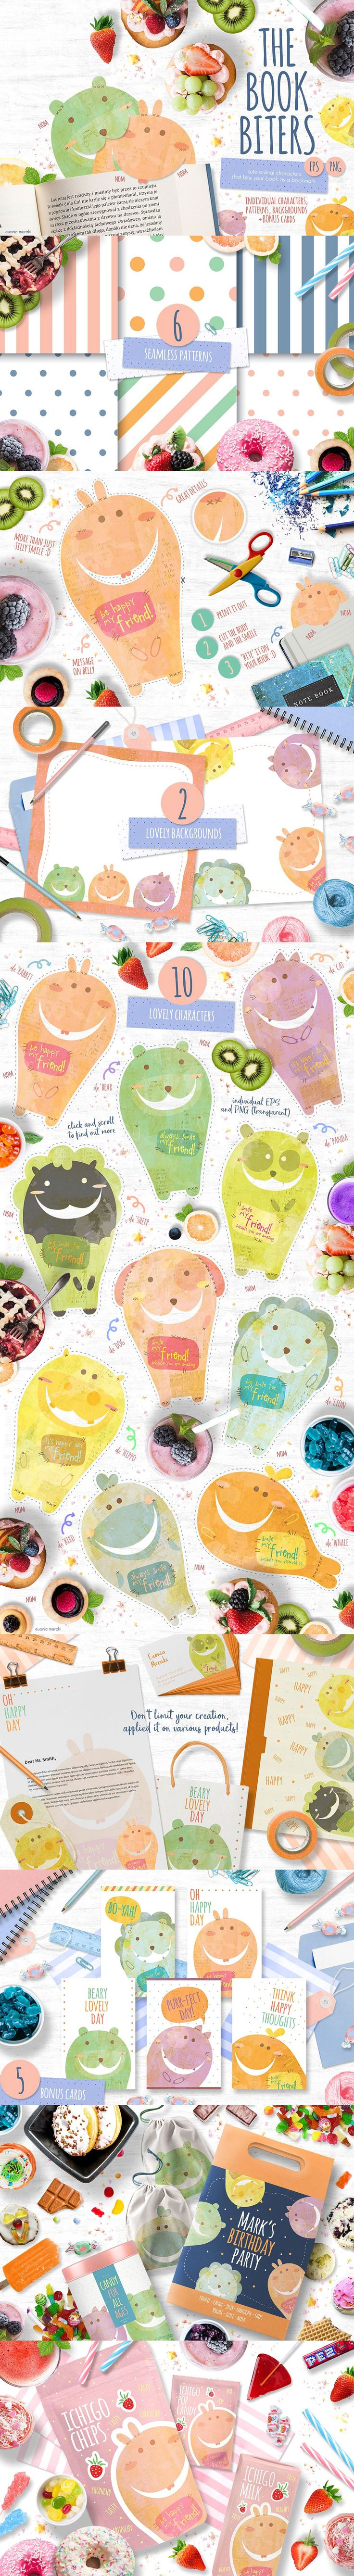 #Freebie Of the Week : Introducing The Book Biters, cute bookmark characters that will happily bite your page :3 *nom - Use it as bookmarks and fuel for your #creative creations! #Birthday invitations, #party supplies, room #decorations, snack #packaging, paper bags, book cover, #stickers and more! ( #vector #illustrations #scrapbooking #patterns #vintage #rainbow )